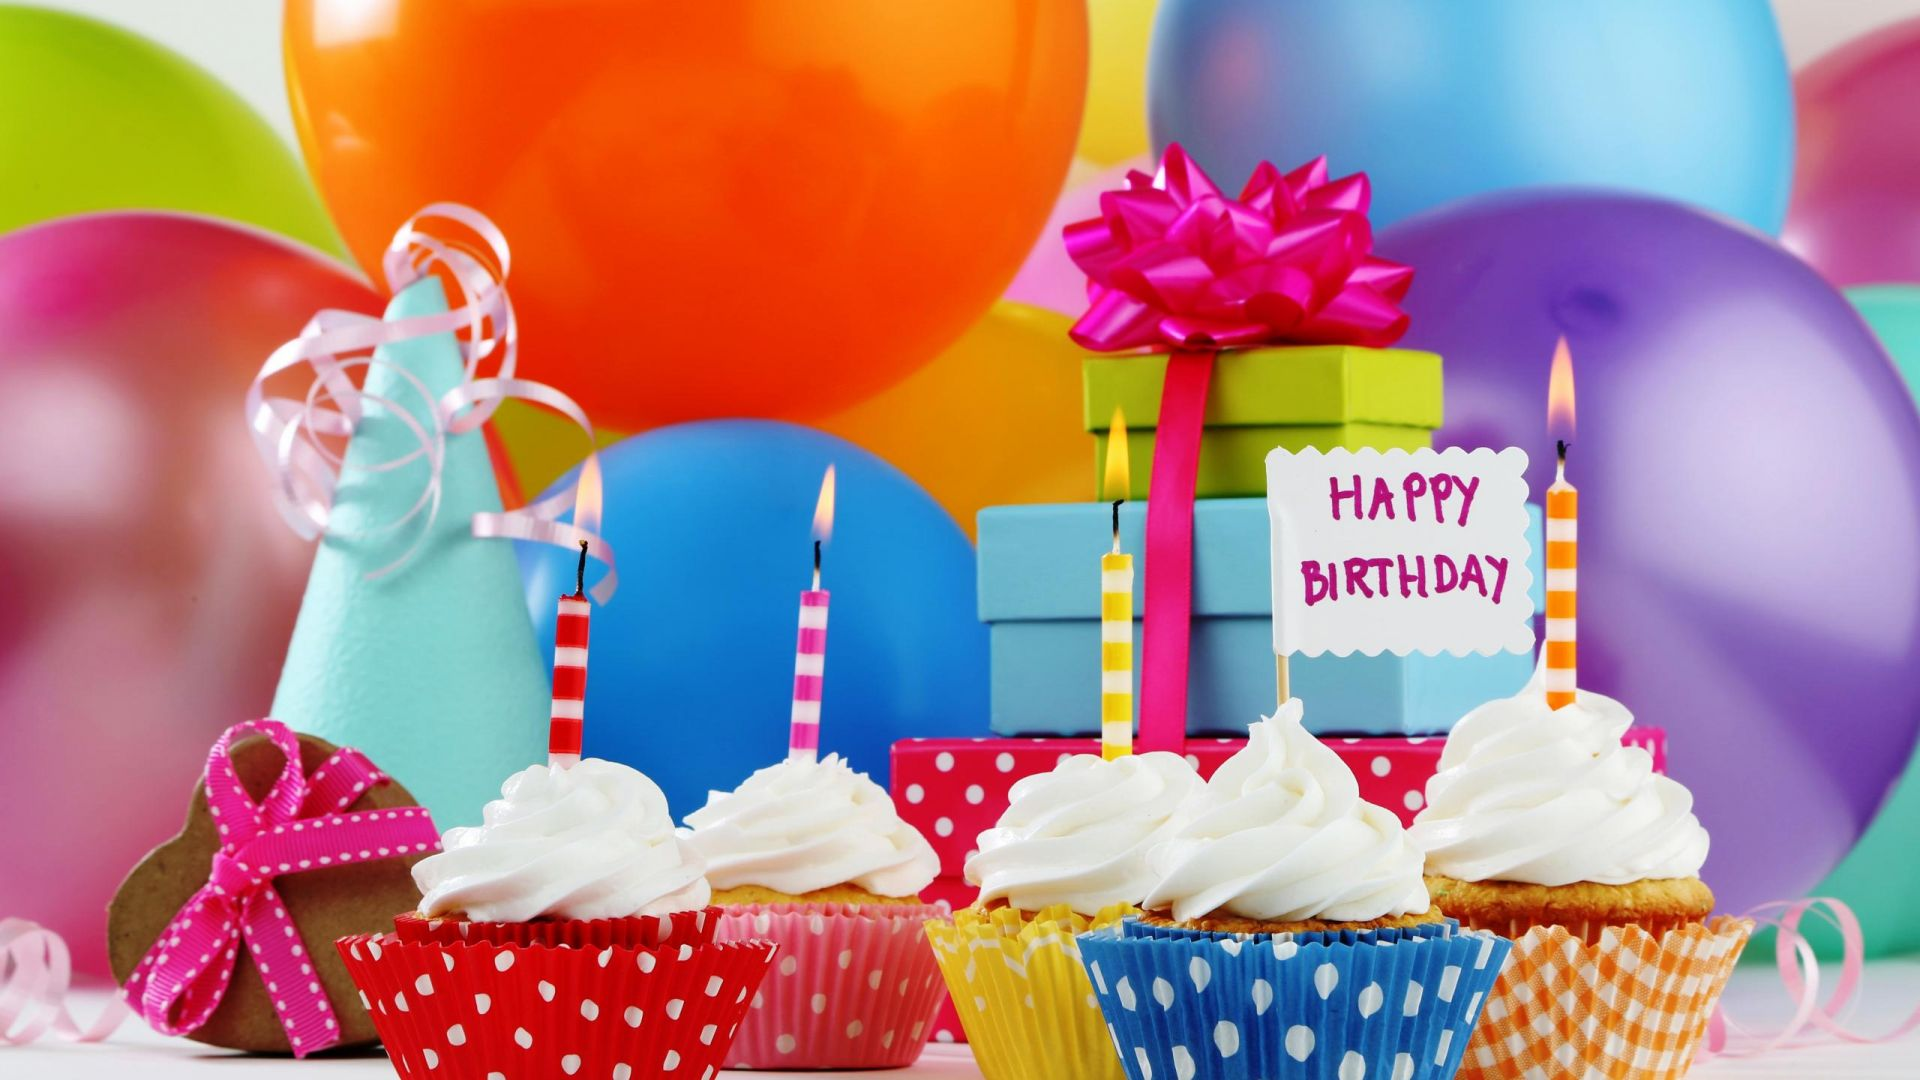 hd wallpaper happy birthday gifts ; happy_birthday_balloon_cupcake_gift_wallpaper